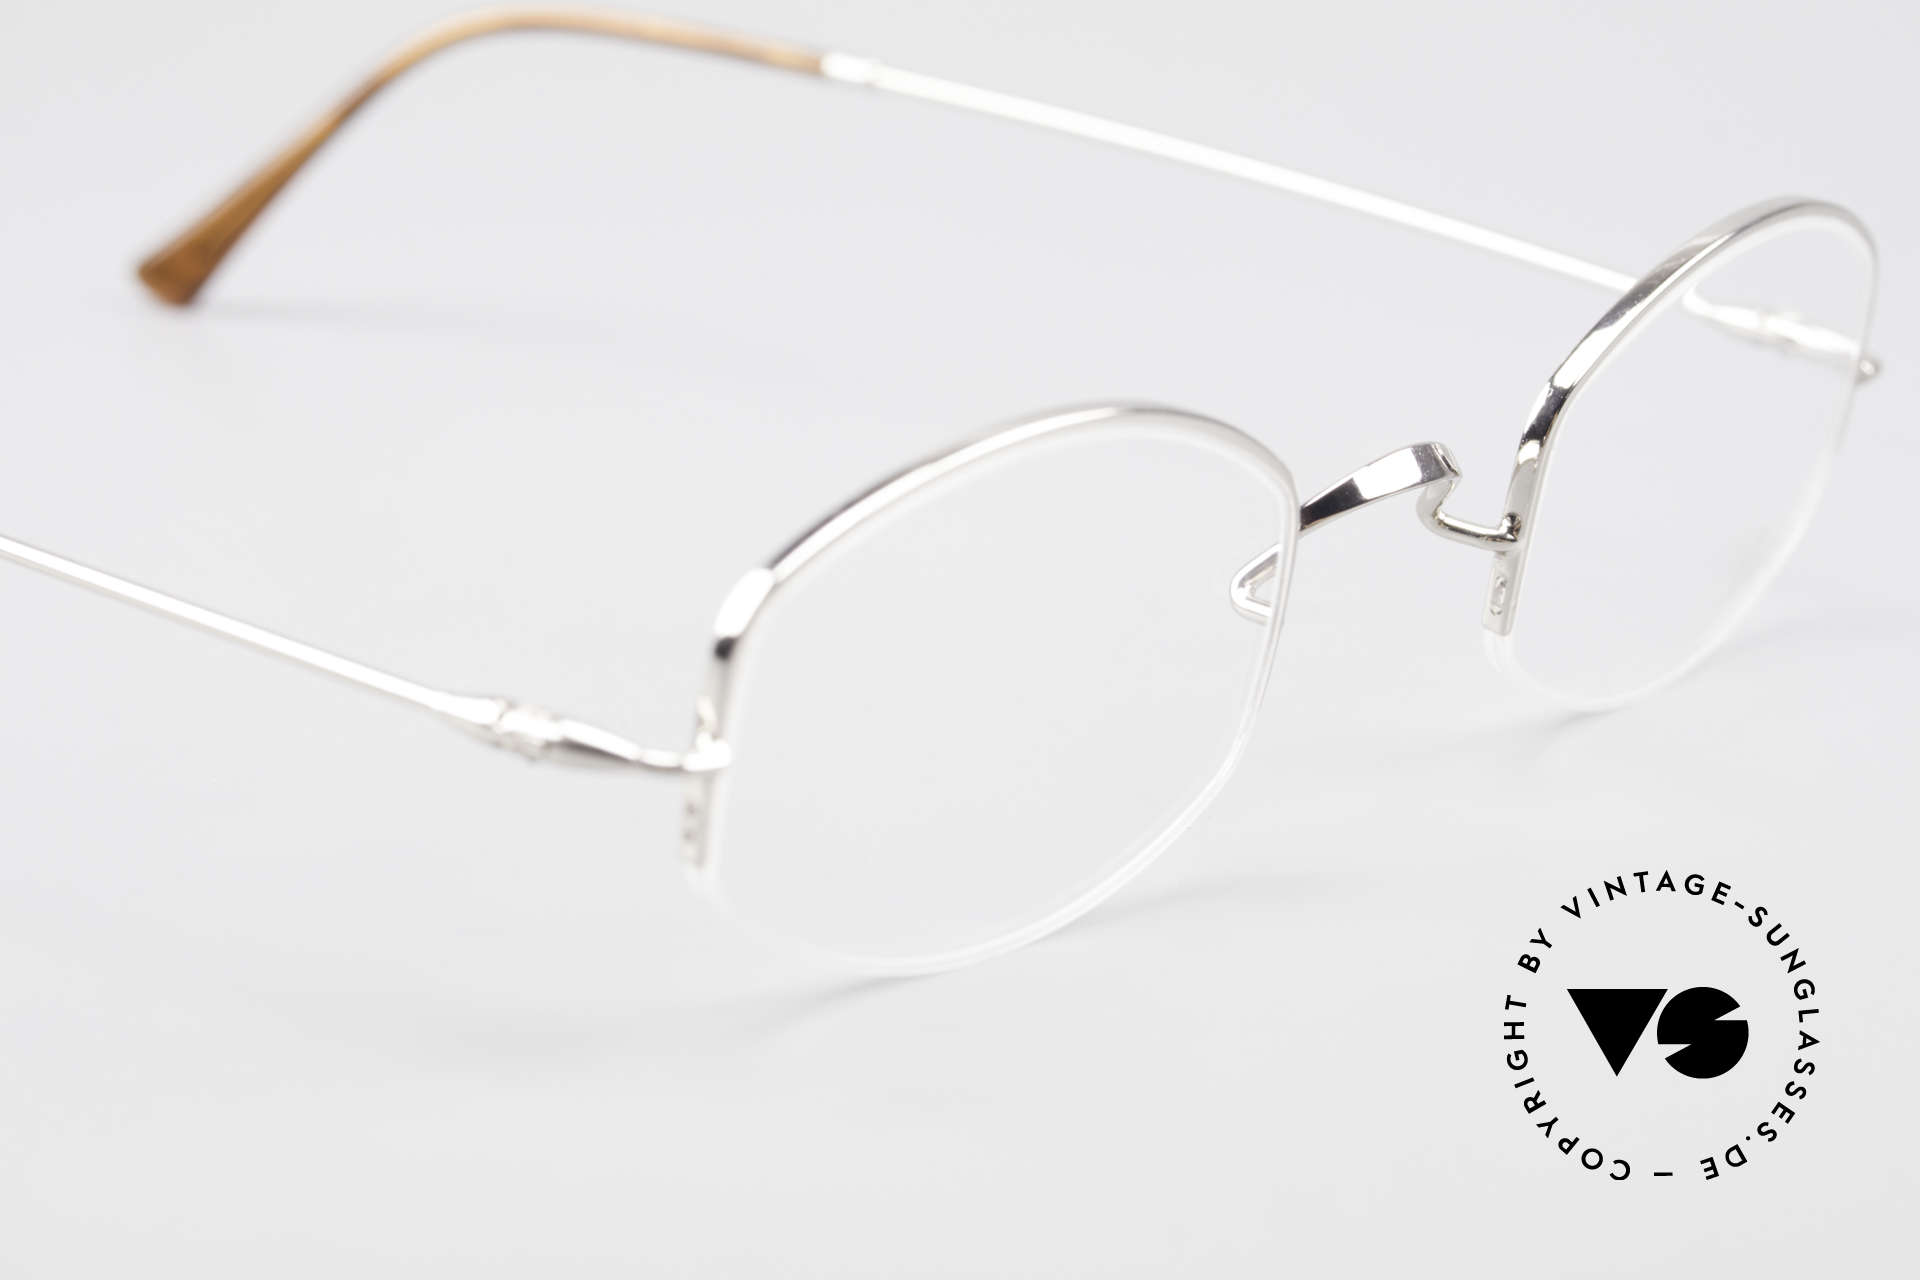 Lunor Classic Semi Rimless Vintage Frame, NO RETRO EYEGLASSES; but a luxury vintage ORIGINAL, Made for Men and Women